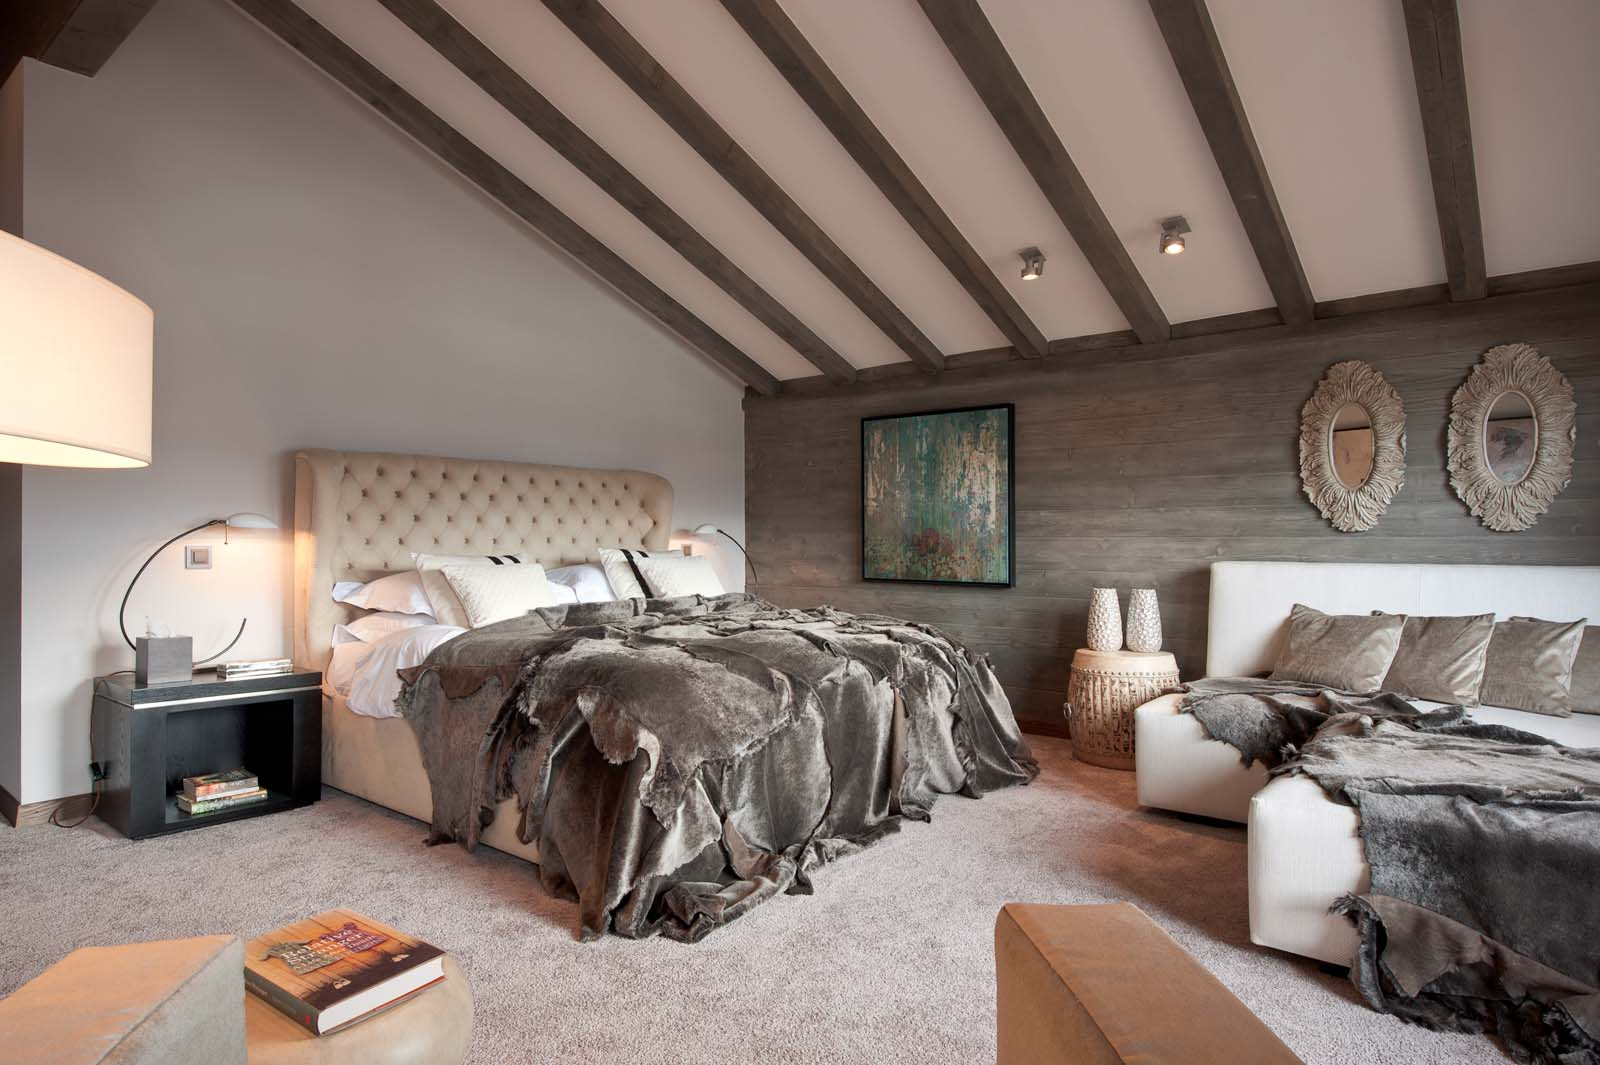 32 Stunning Luxury Master Bedroom Designs Photo Collection: Chalet No14 In Verbier